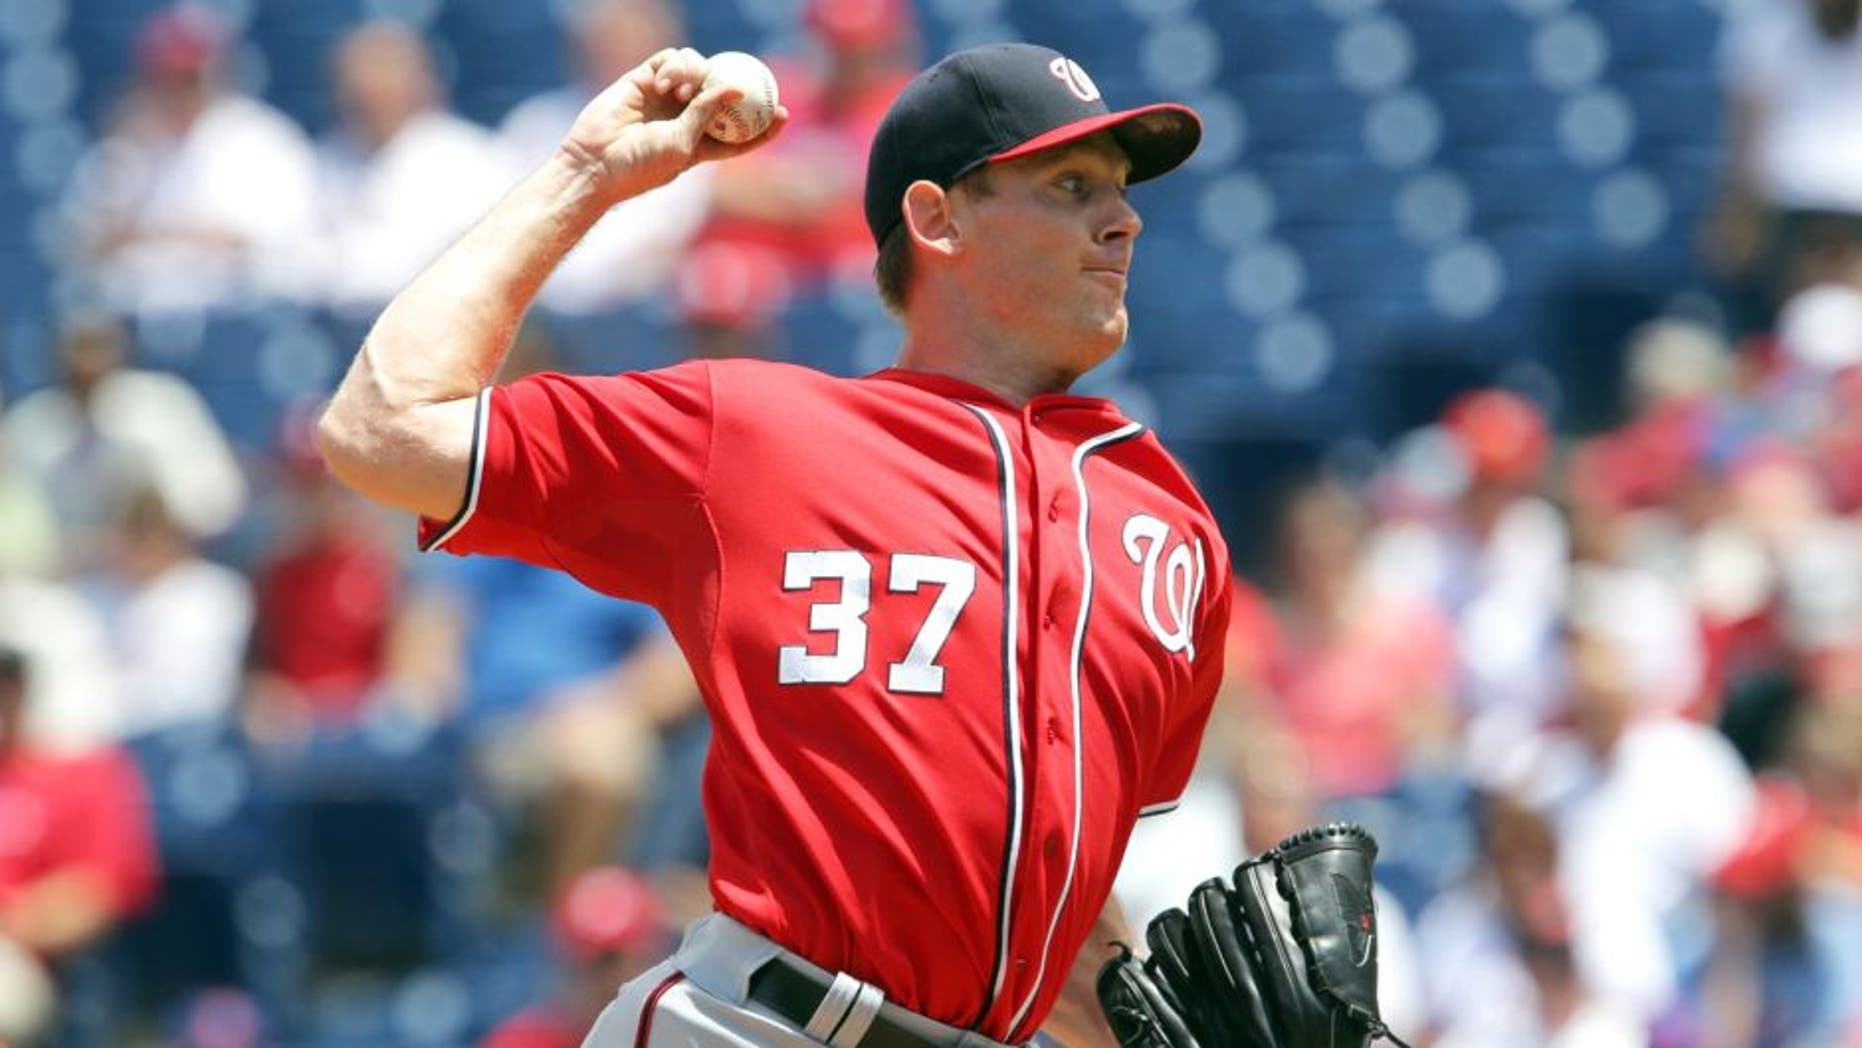 PHILADELPHIA, PA - JUNE 28: Stephen Strasburg #37 of the Washington Nationals throws a pitch in the first inning during game one of a doubleheader against the Philadelphia Phillies at Citizens Bank Park on June 28, 2015 in Philadelphia, Pennsylvania. (Photo by Hunter Martin/Getty Images)